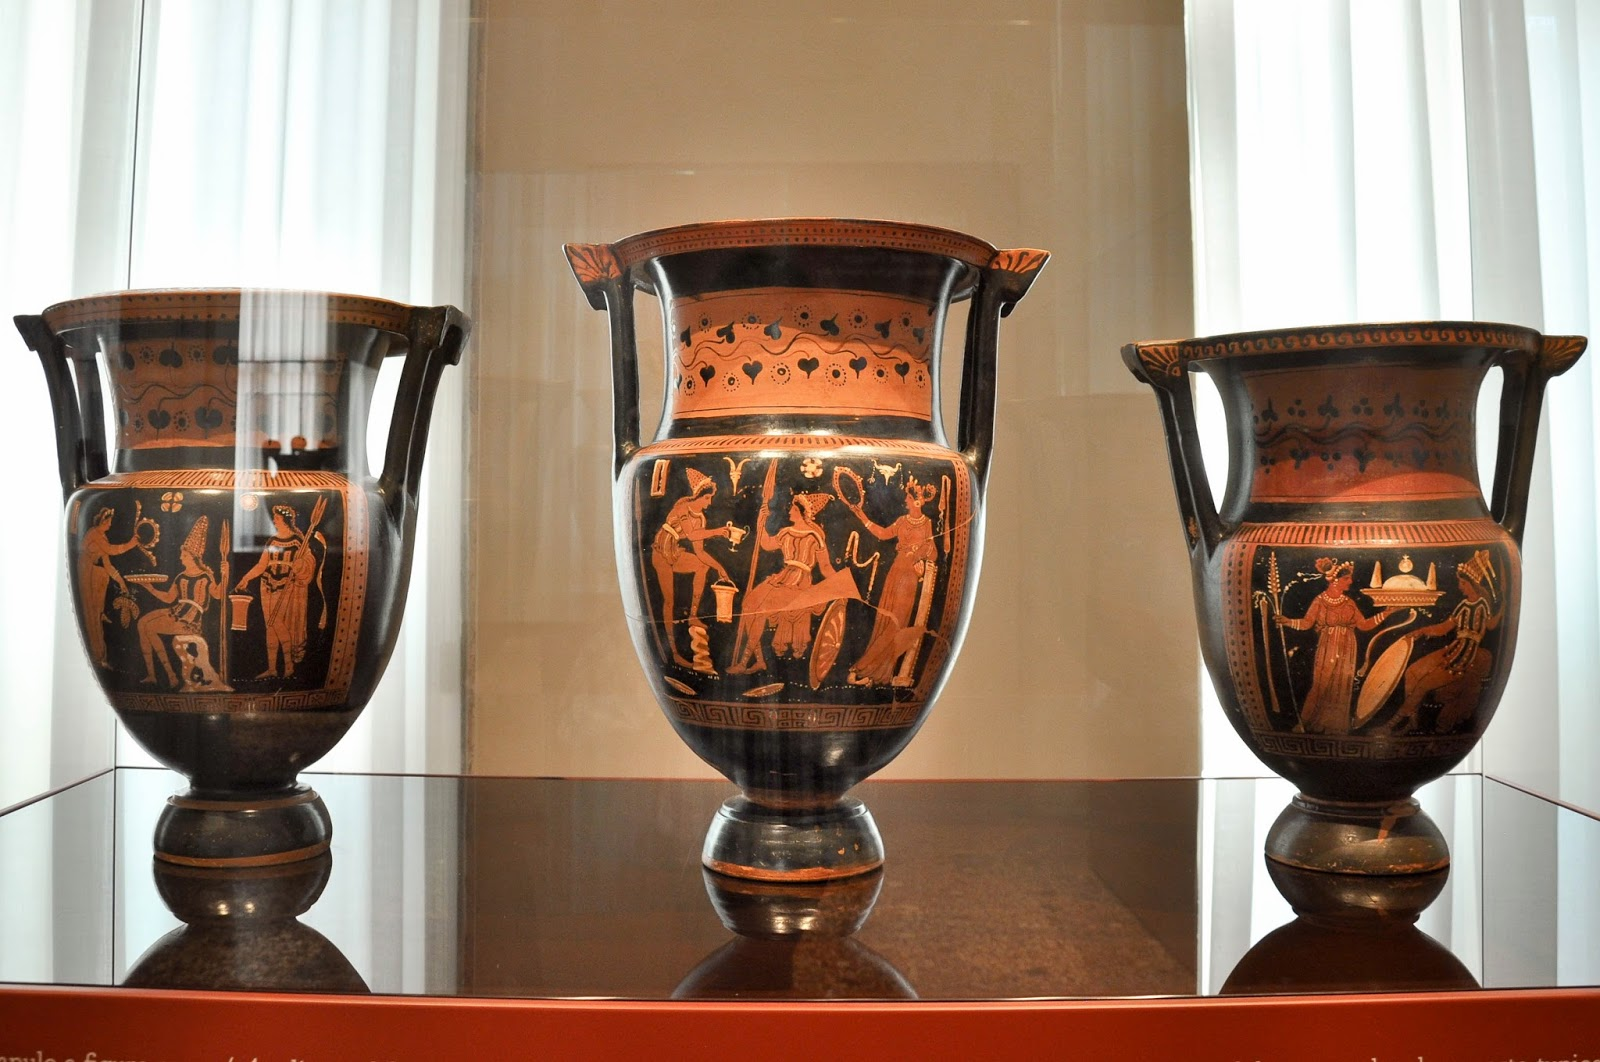 Ancient Greek  vessels in Gallerie D'Italia in Palazzo Leoni Montanari, Vicenza, Italy